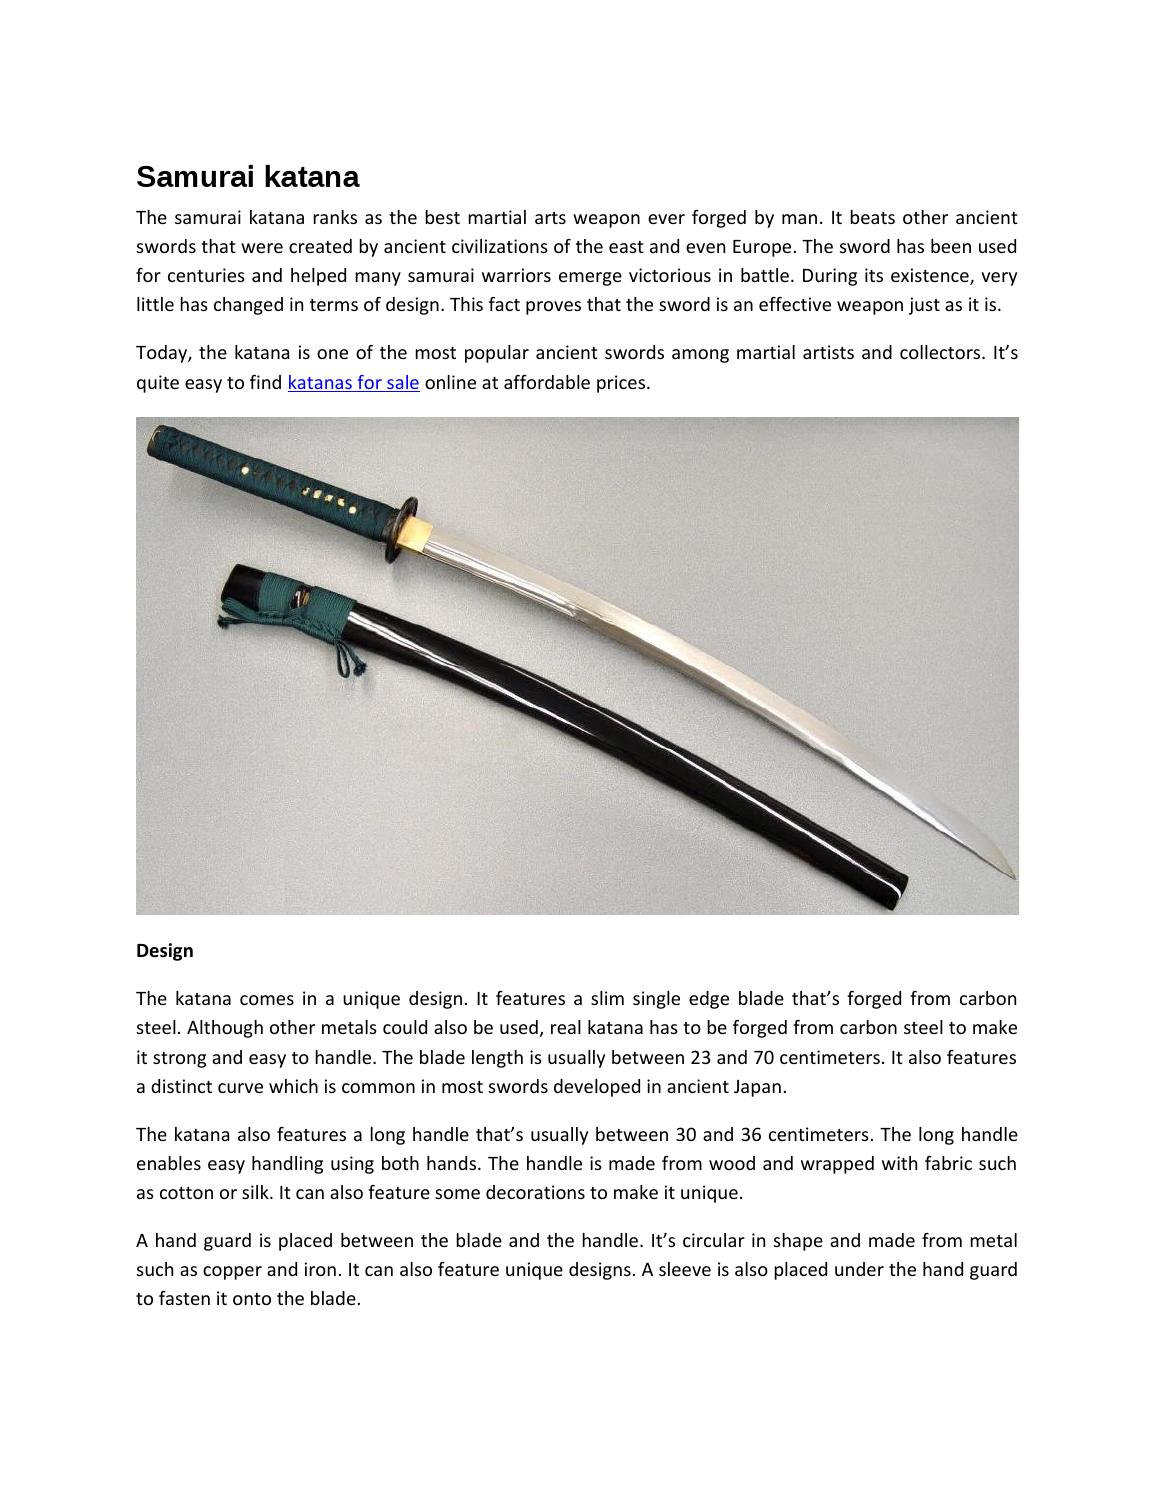 What is the length of a katana sword